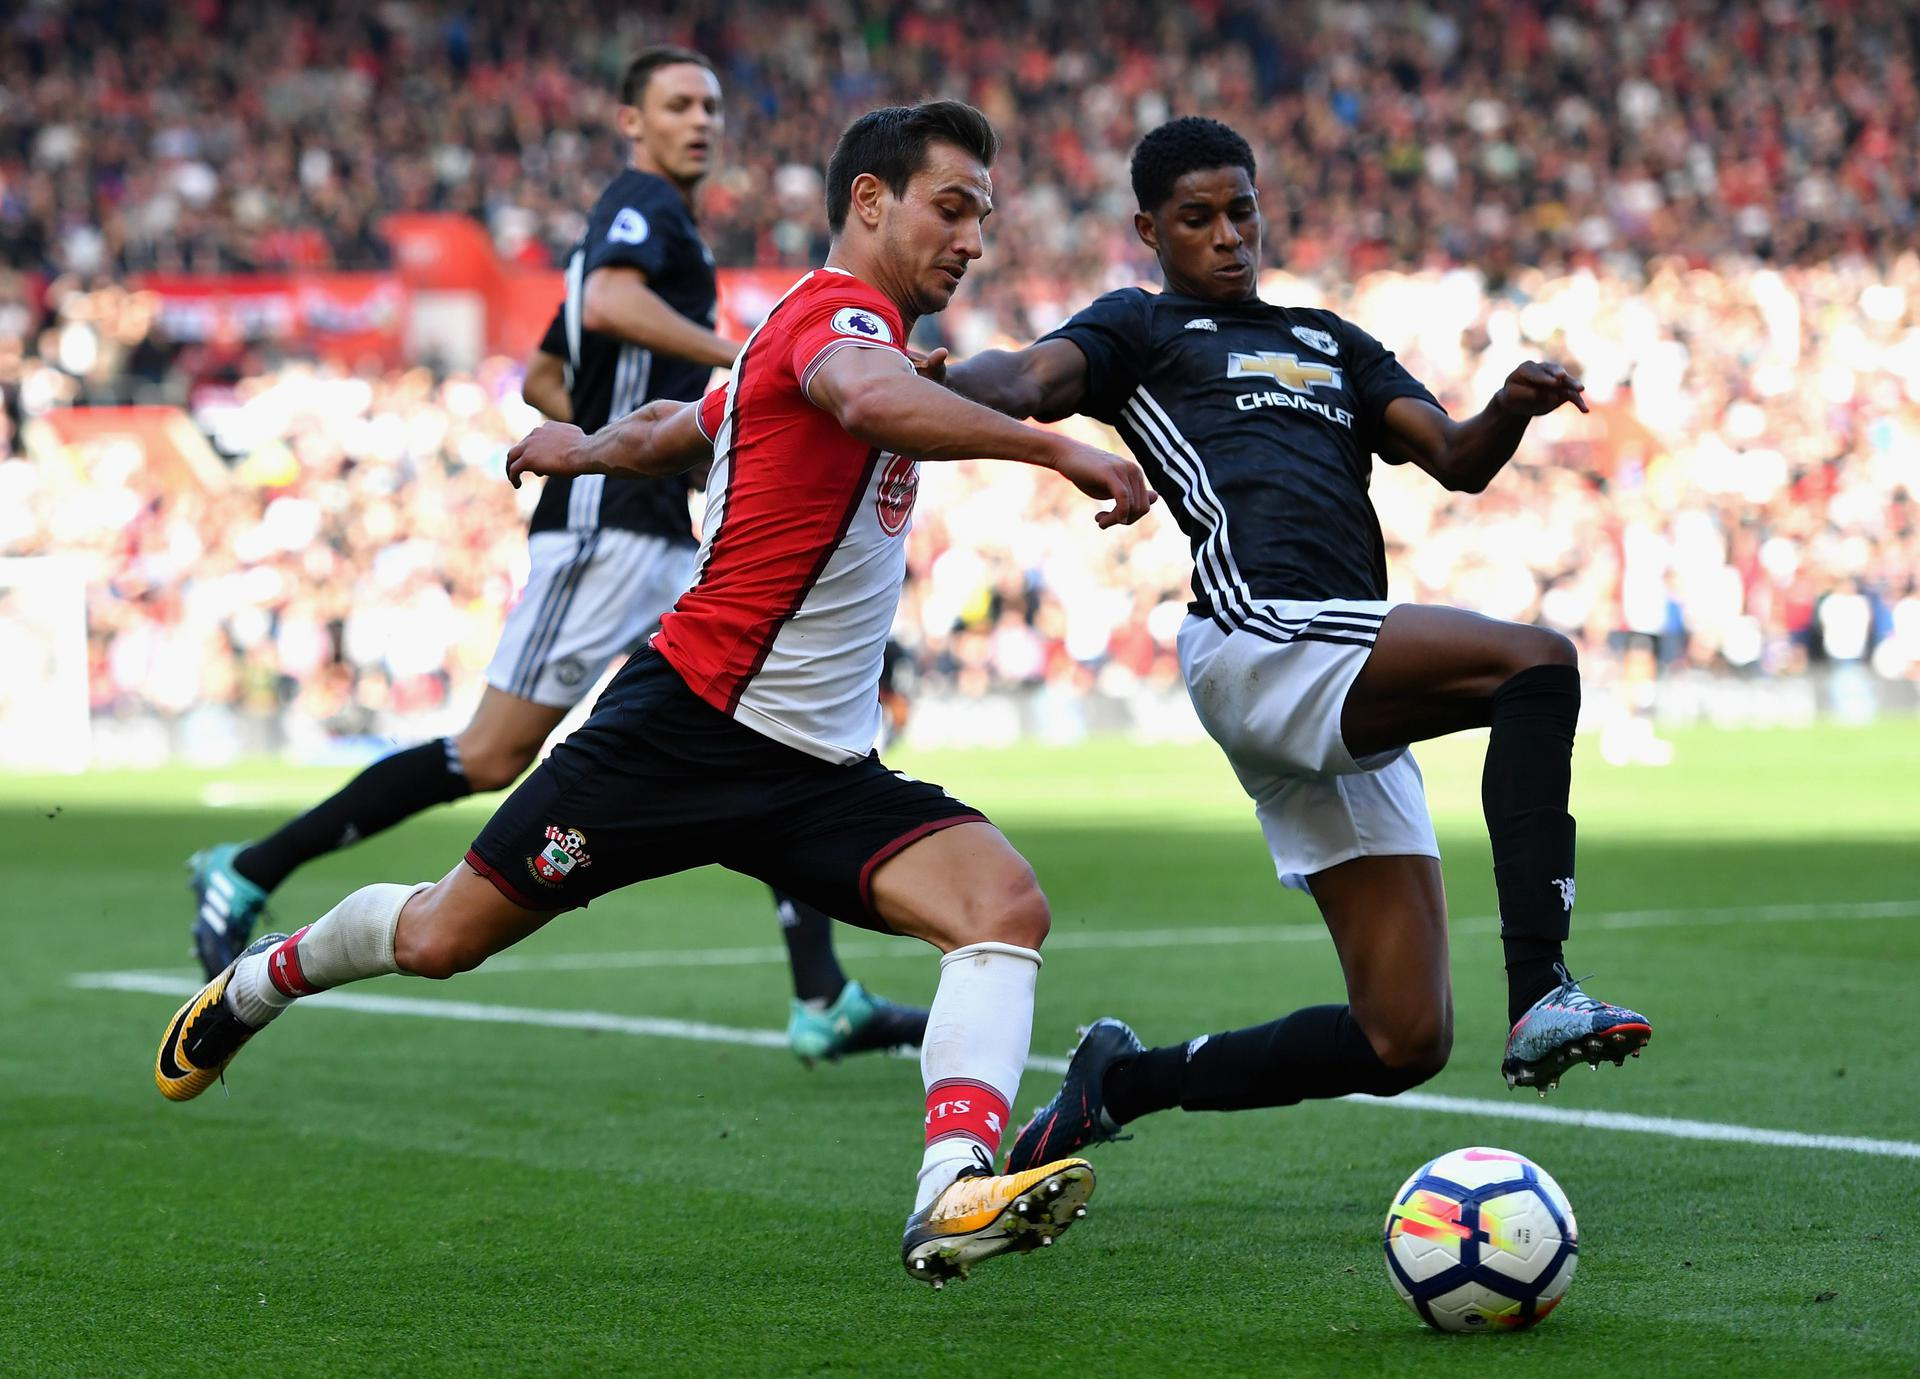 Cedric Soares tries to cross the ball as Marcus Rashford closes in